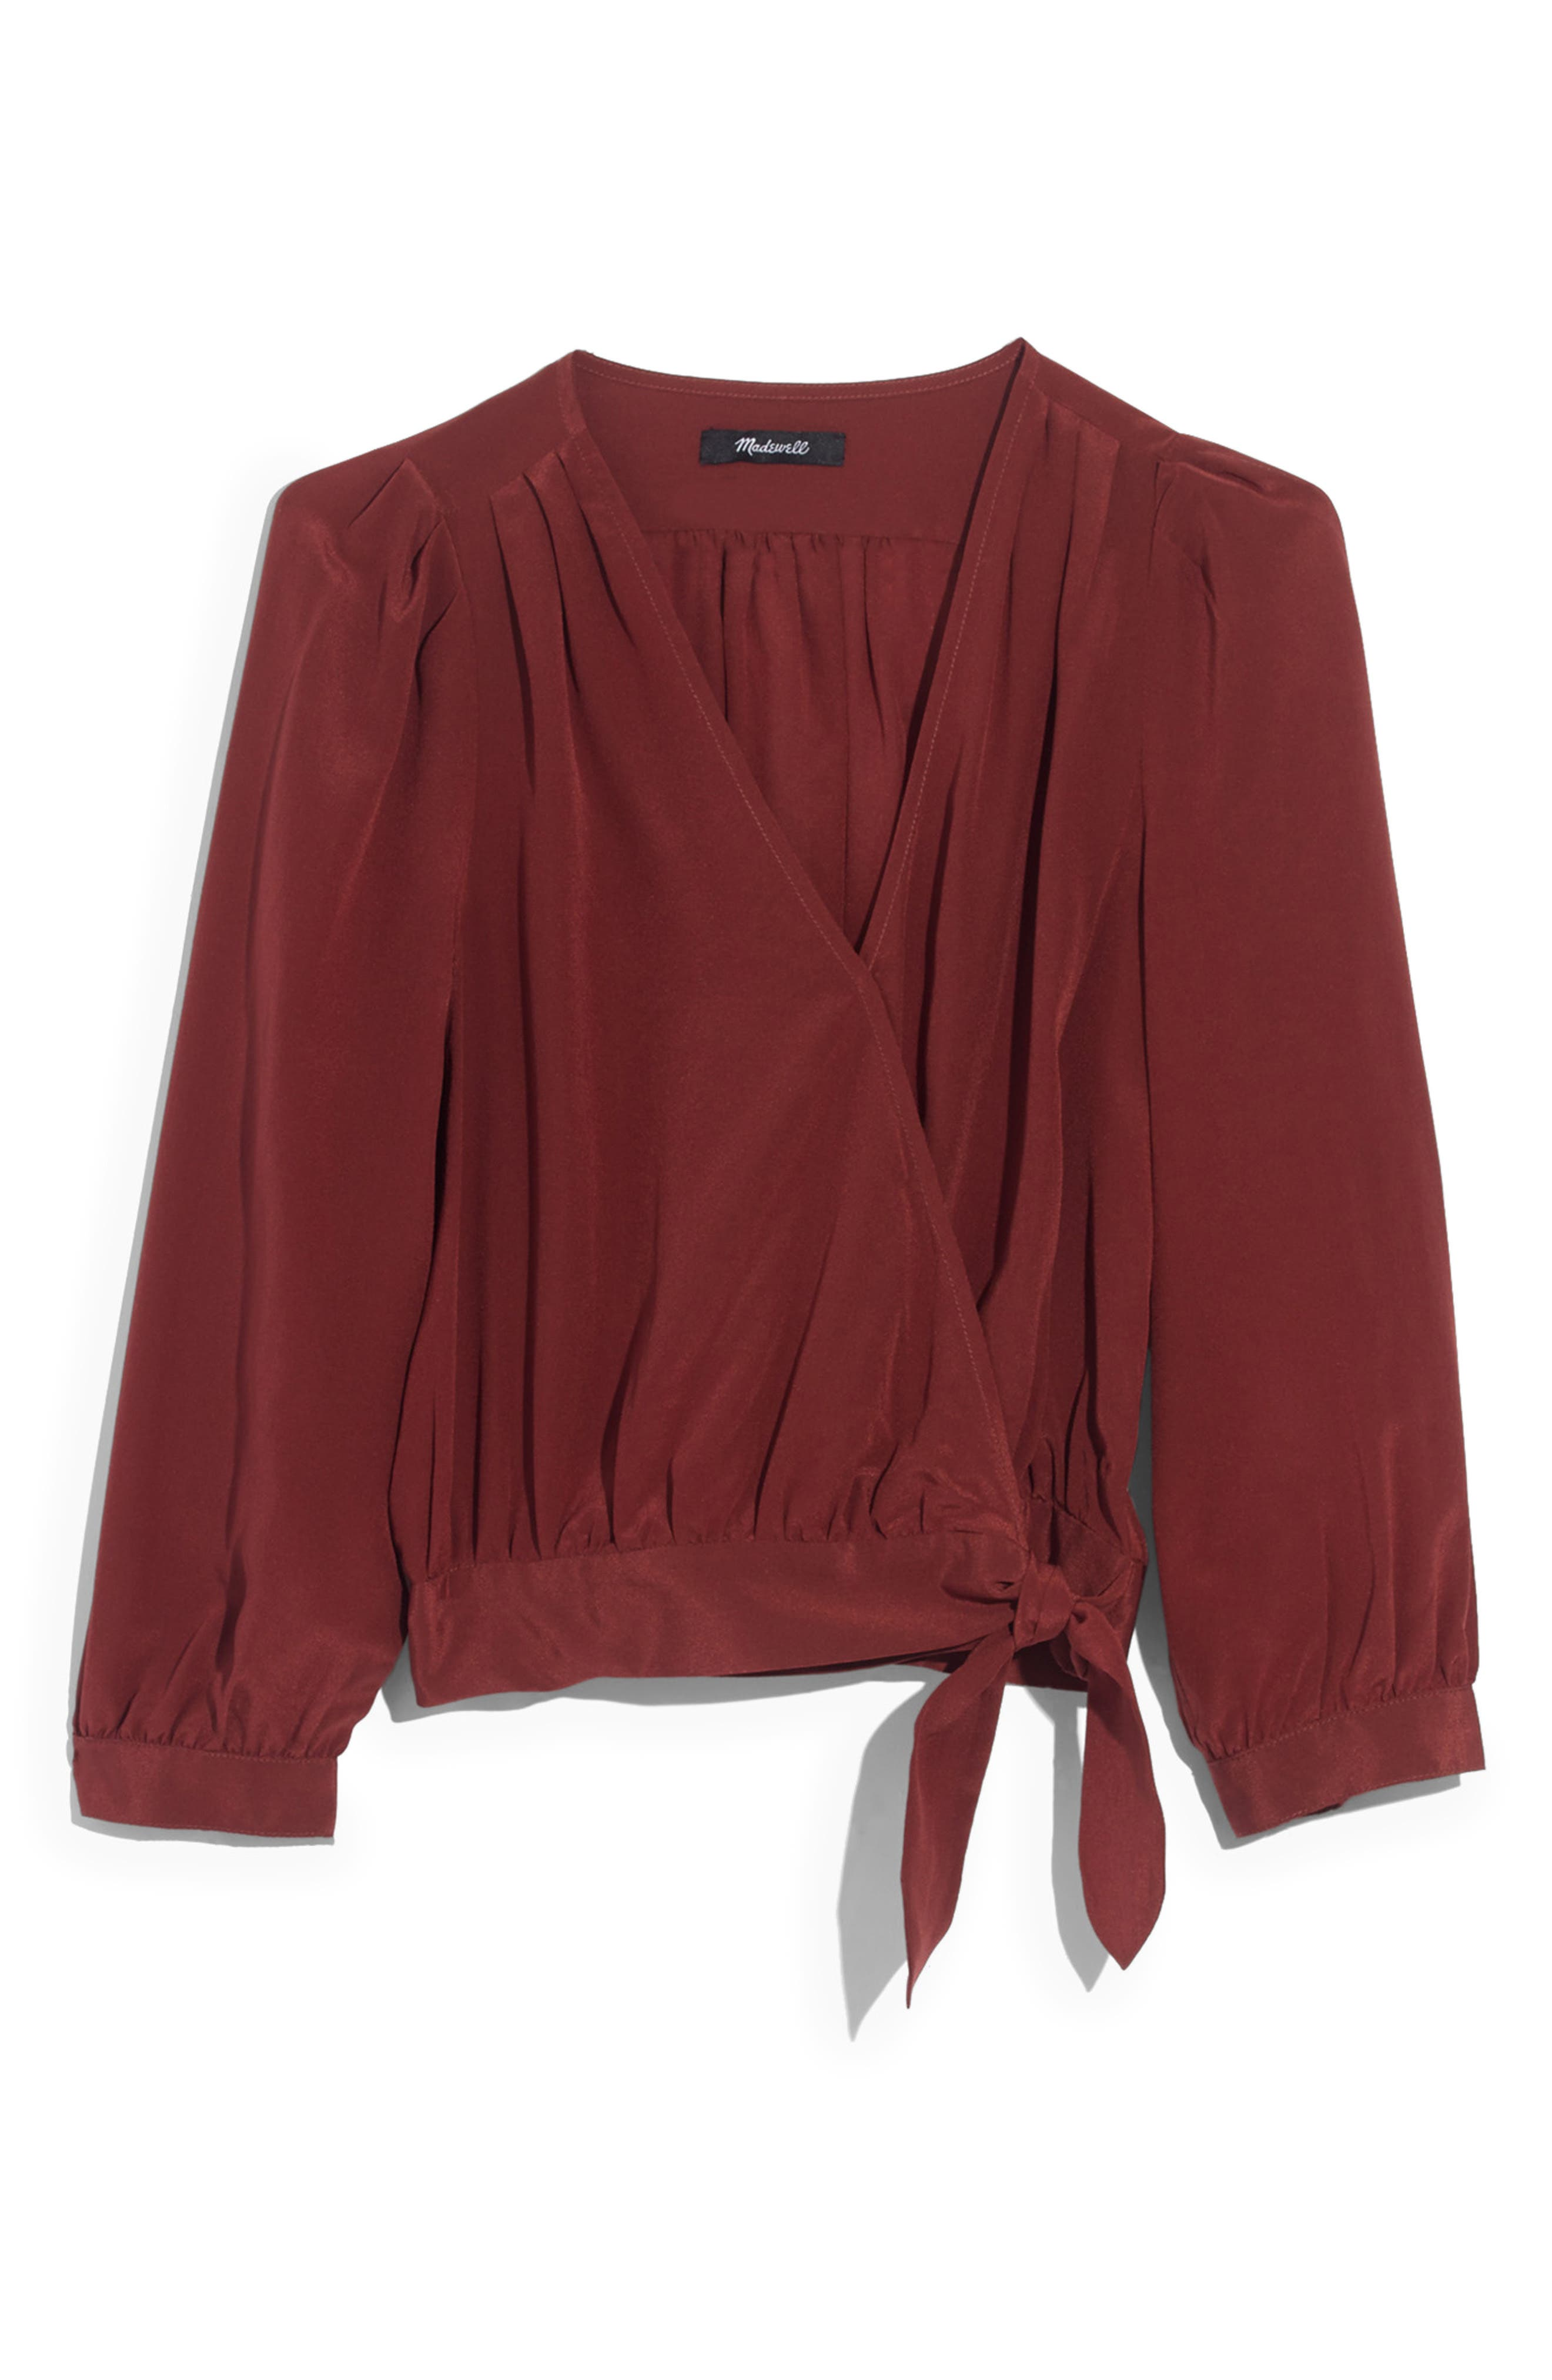 MADEWELL, Silk Wrap Top, Alternate thumbnail 4, color, 200